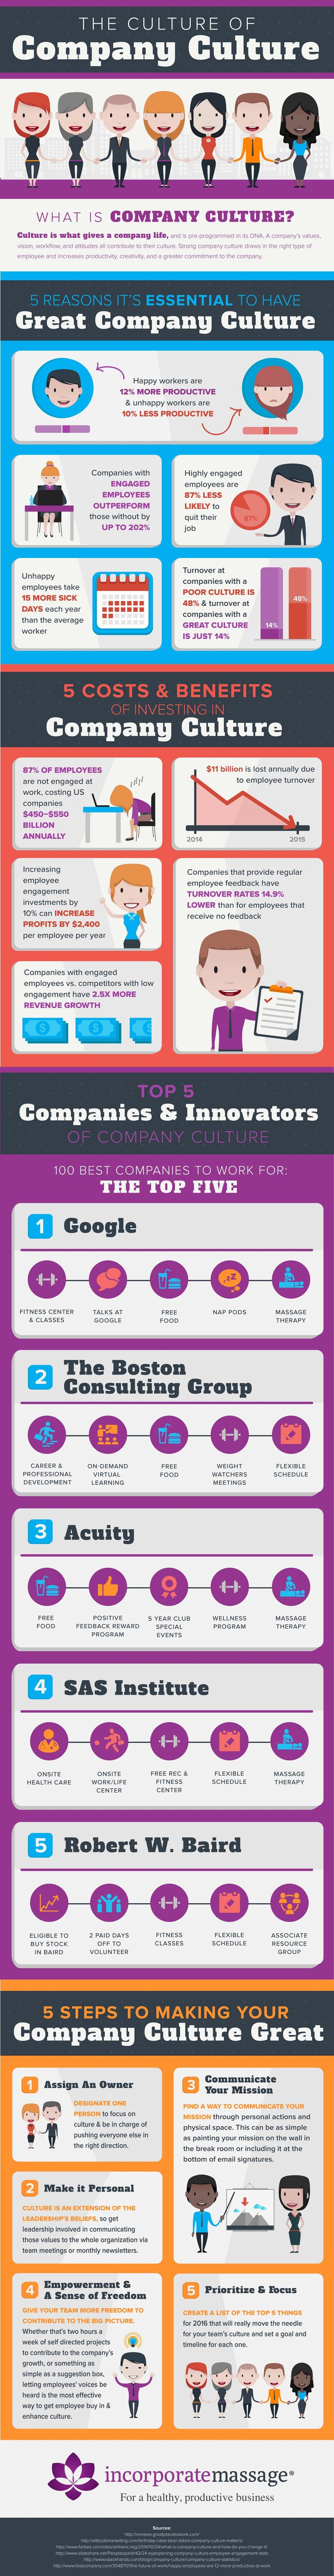 As companies become more aware of how everything is connected, more businesses are embracing the idea that satisfied employees mean satisfied customers. And improving your company culture is as important as improving your product or service. Learn more about this topic in this infographic from Incorporate Massage.